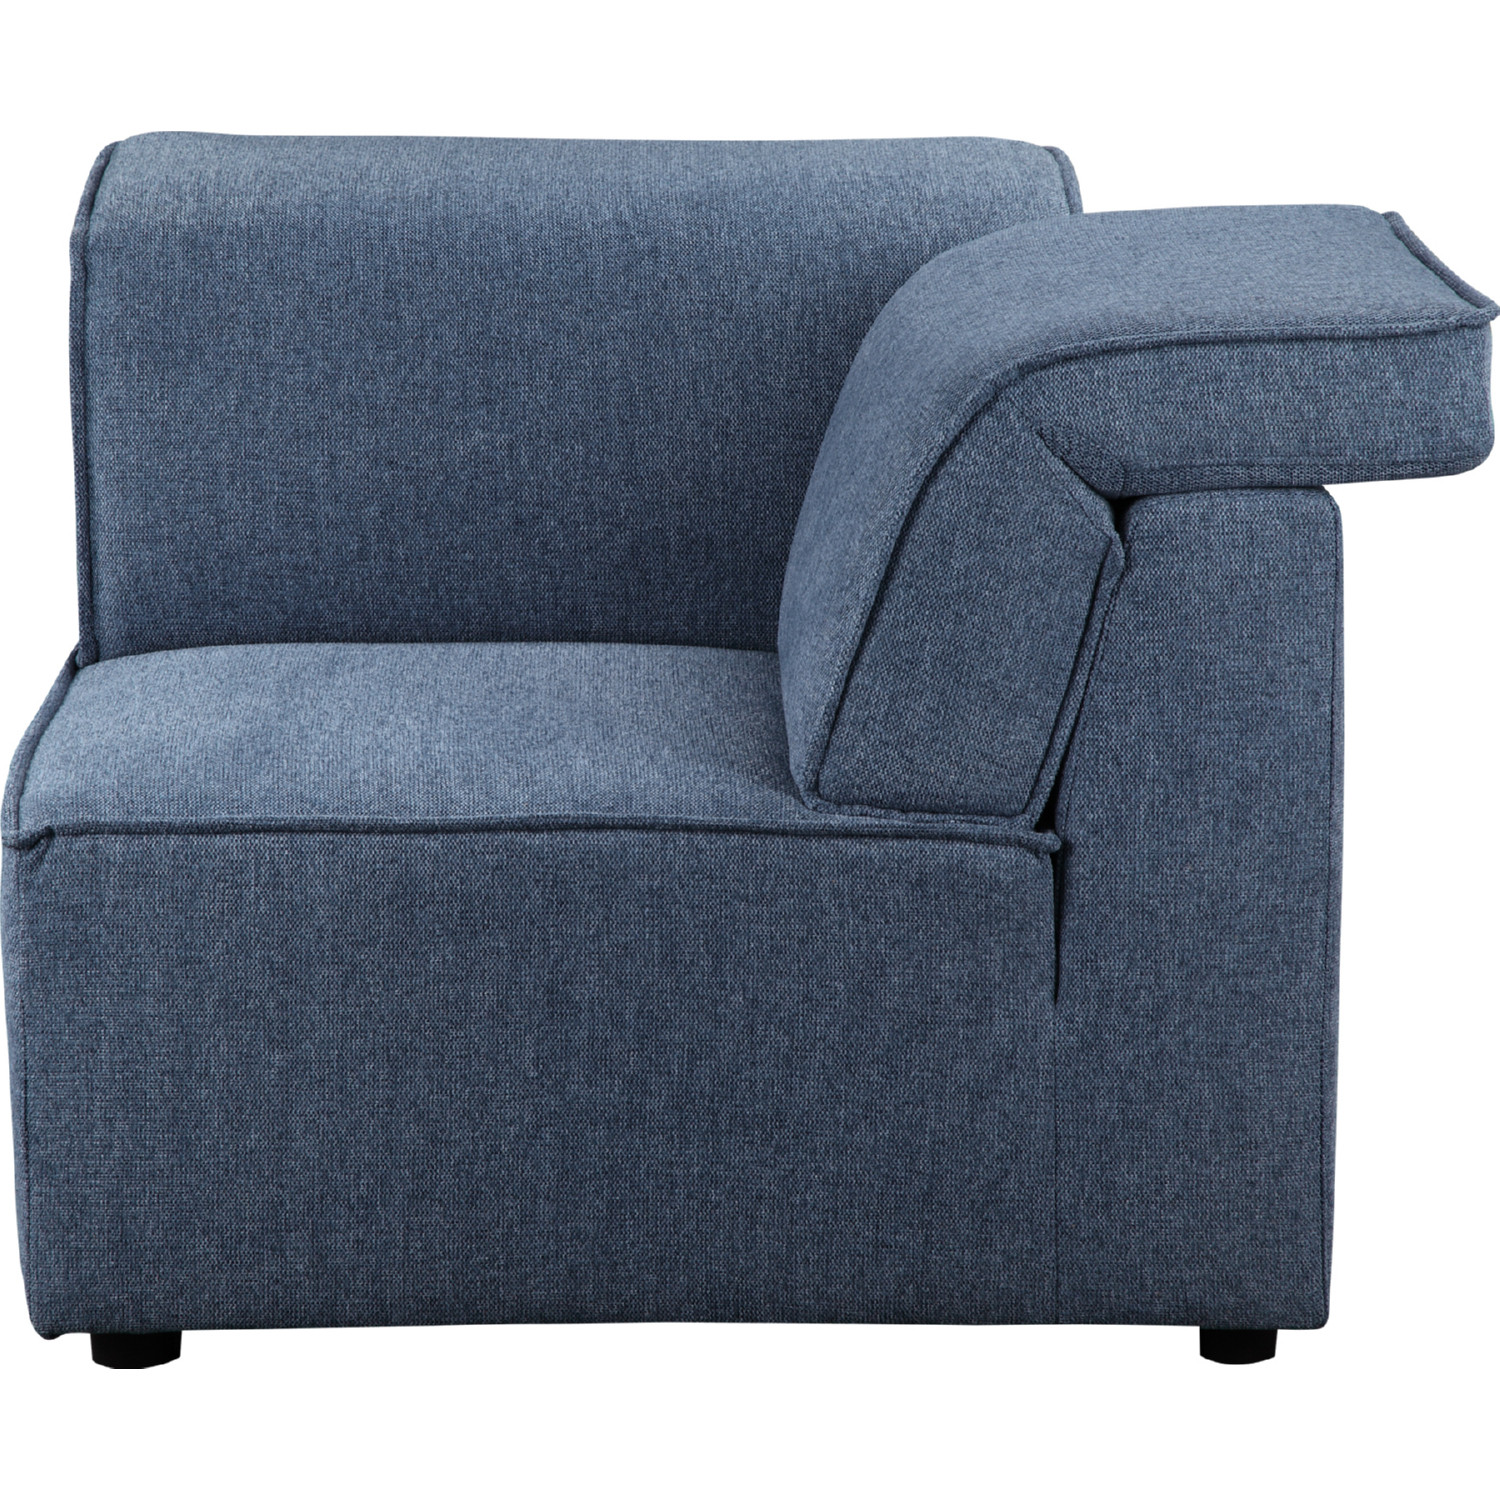 Rodeo Corner Sectional Sofa Unit In Navy Blue Fabric By Moe S Home Collection